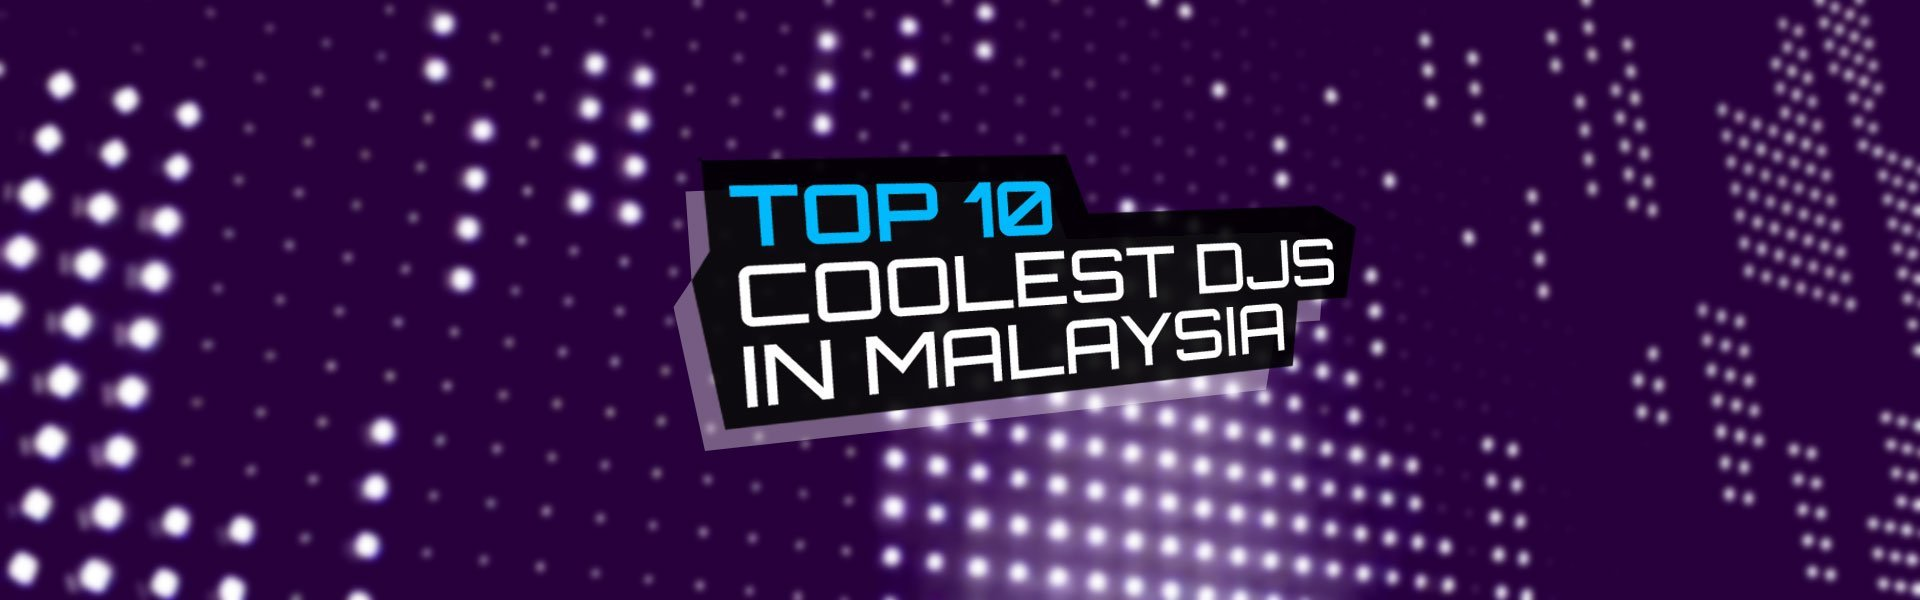 Top 10 Coolest DJs in Malaysia